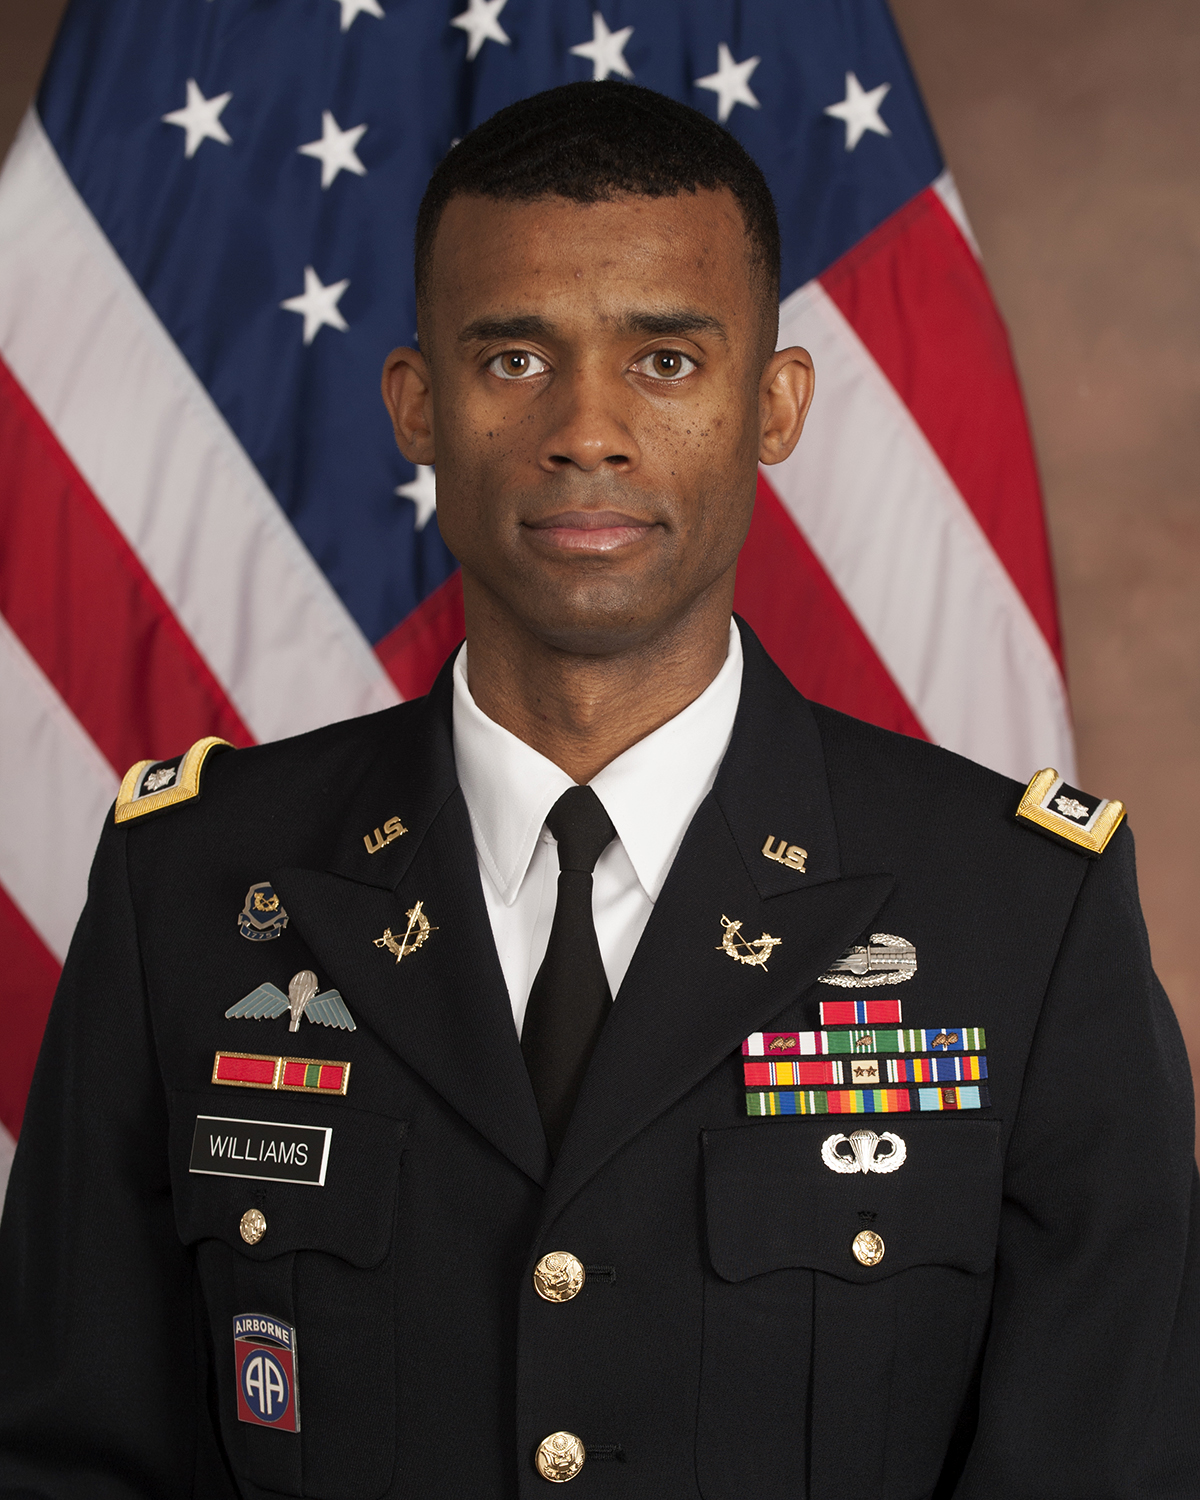 LTC Winston Williams